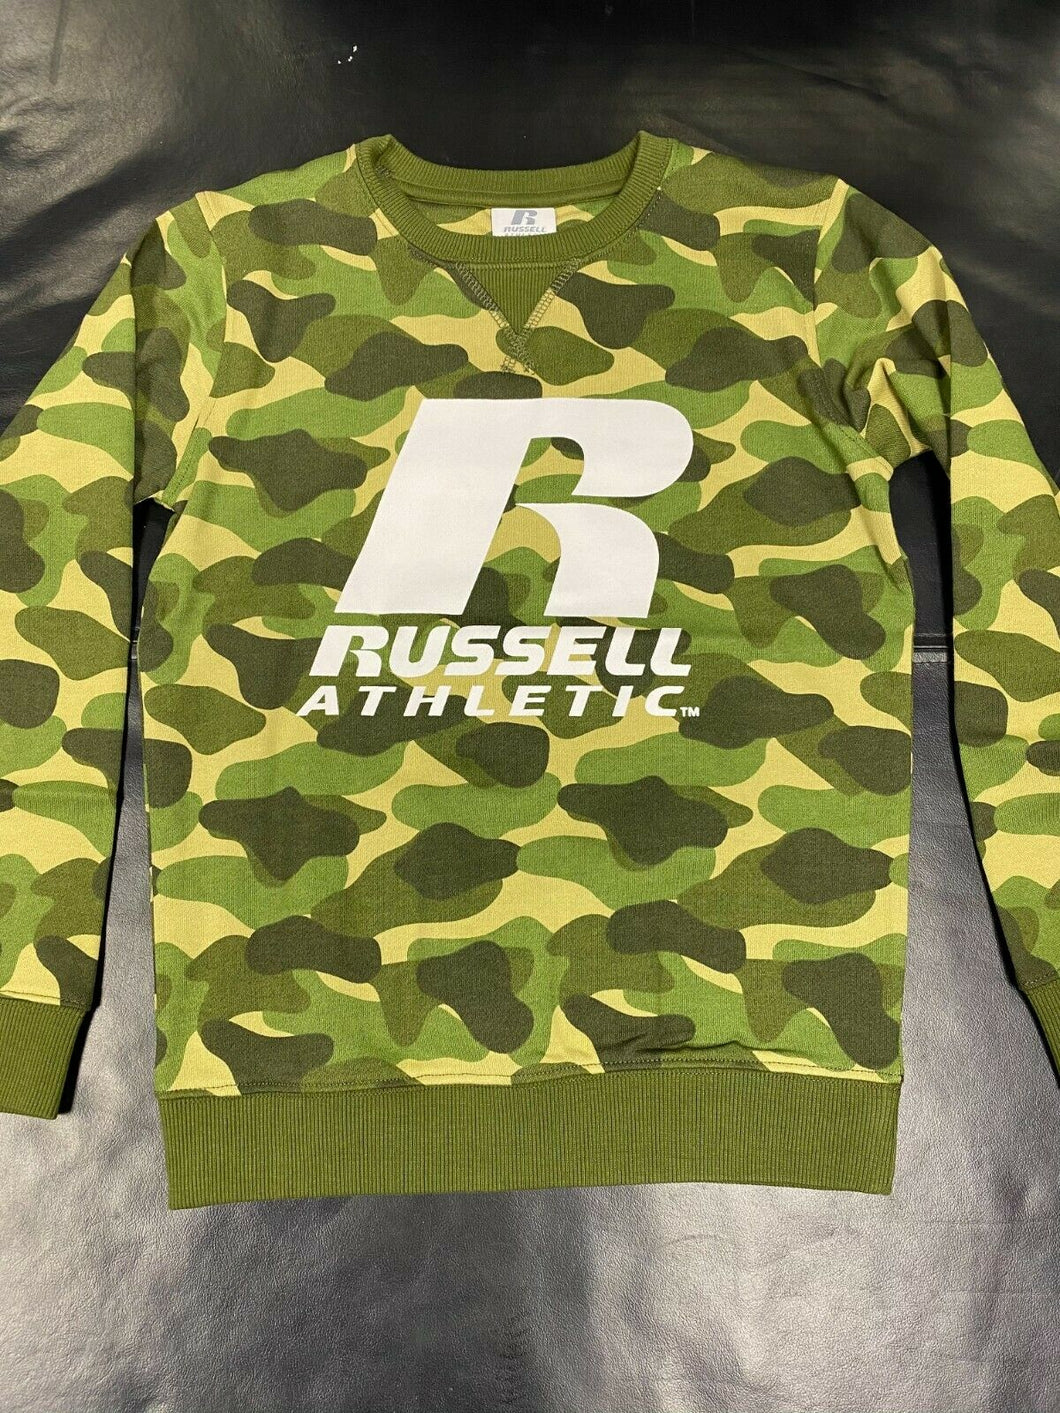 RUSSELL ATHLETICS BOYS SWEAT SHIRT - CAMO  (0018 A70)